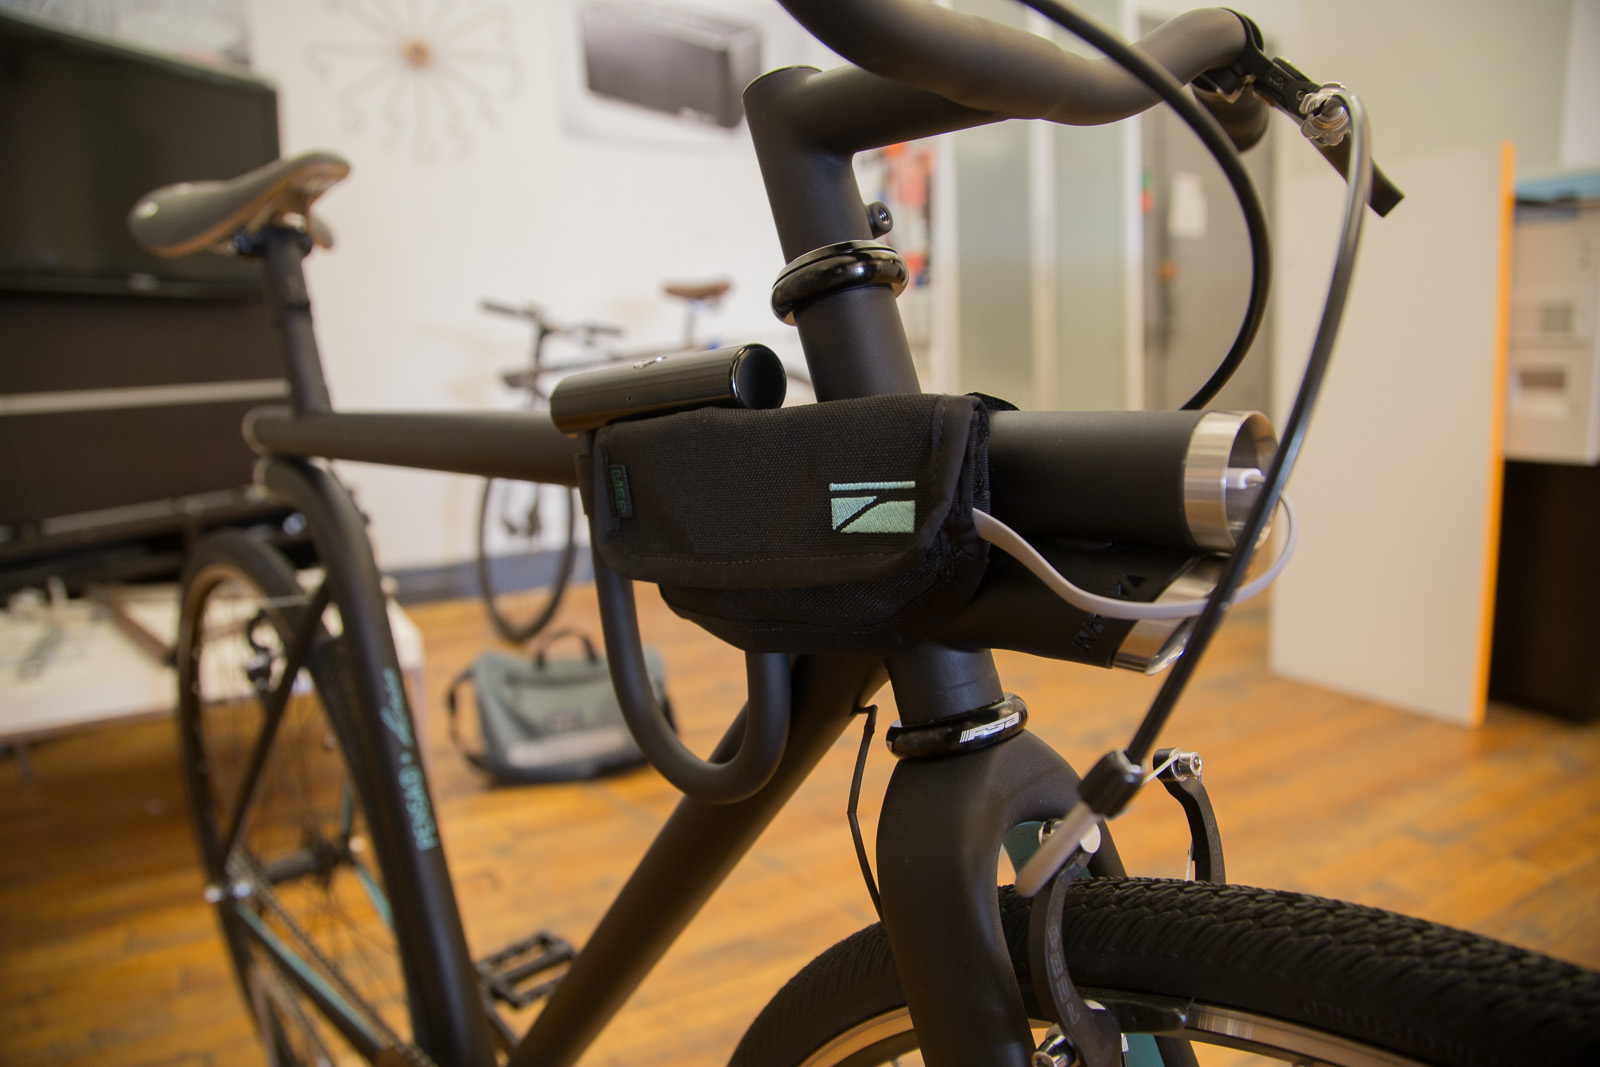 The pouch made by Mer Bags holds a phone that can be charged with a USB cable connected to the bike.